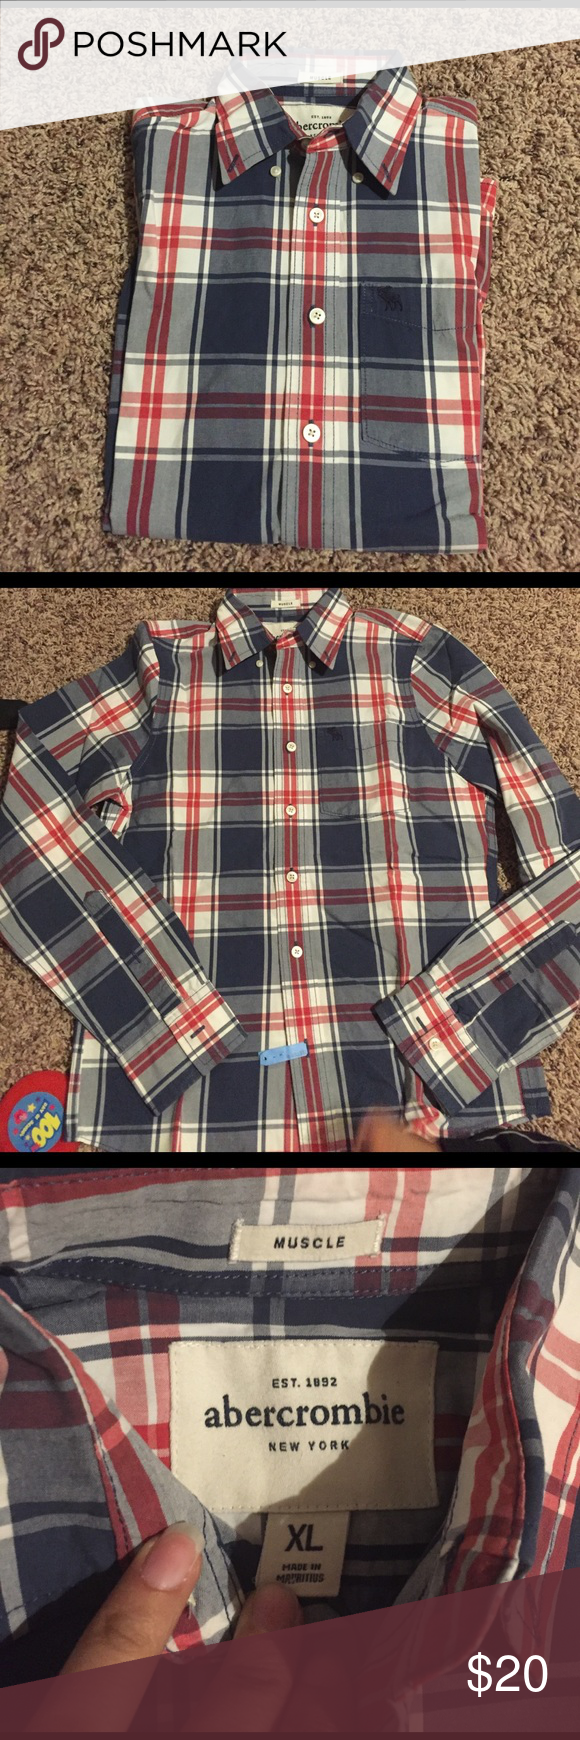 Abercrombie shirt Good condition size xl . Muscle Abercrombie & Fitch Shirts